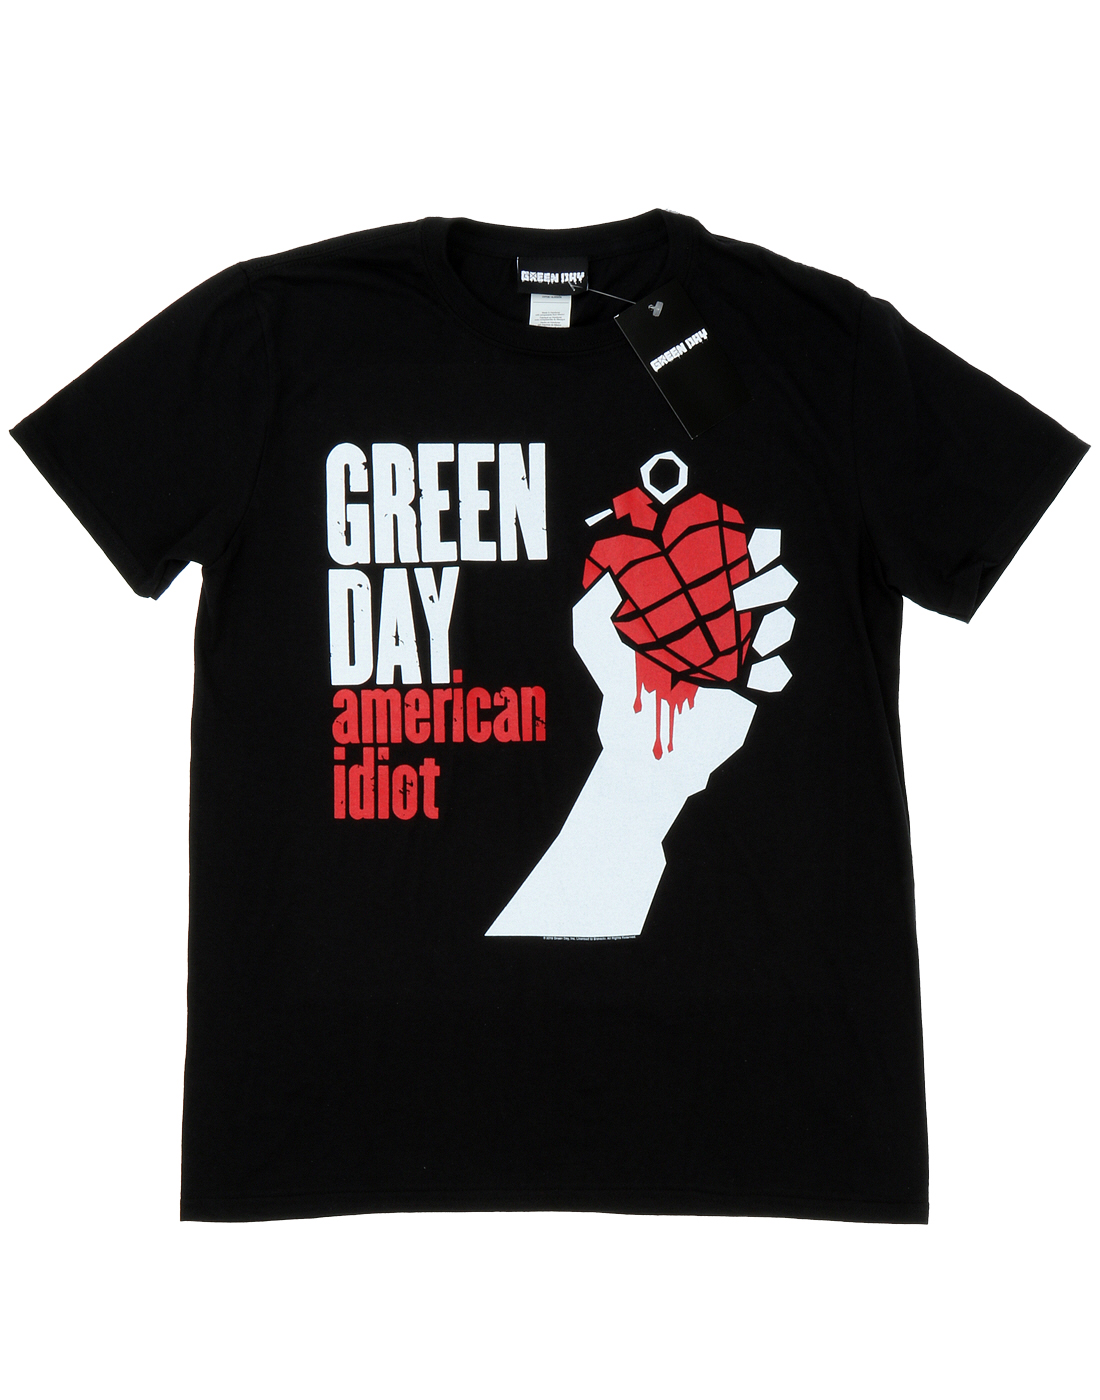 Green Day's fourth album, Insomniac, was released in Just a year later, in they took a short break, before coming back together in to work on their fifth album, Nimrod. Guitarist Jason White joined the band in to support them during concerts. Green Day's sixth album, Warning, was released in